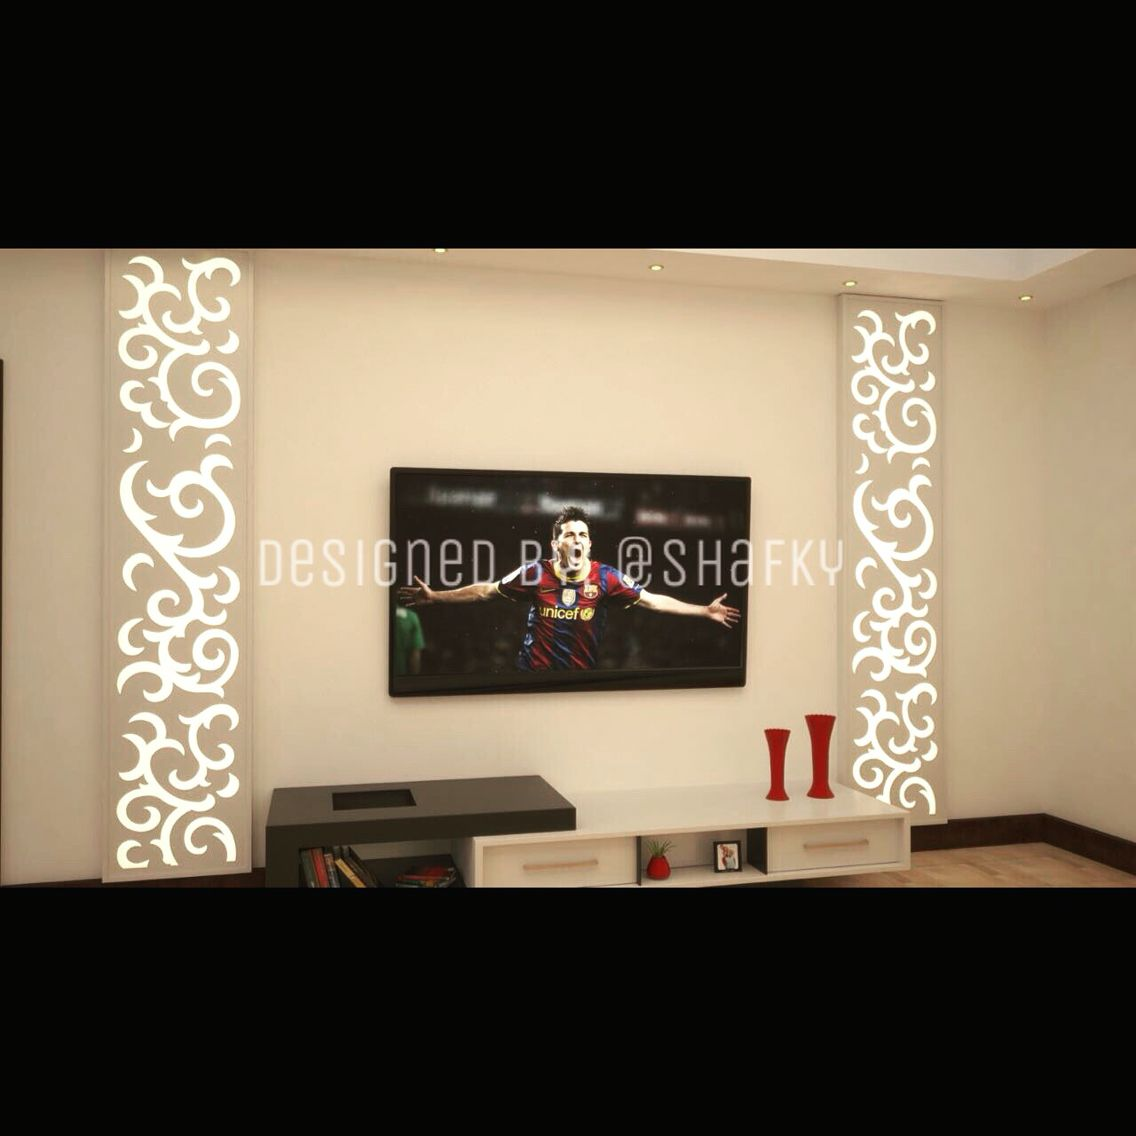 Tv Wall Design With Wooden Boxed Shape Acrylic Wooden Cnc Design